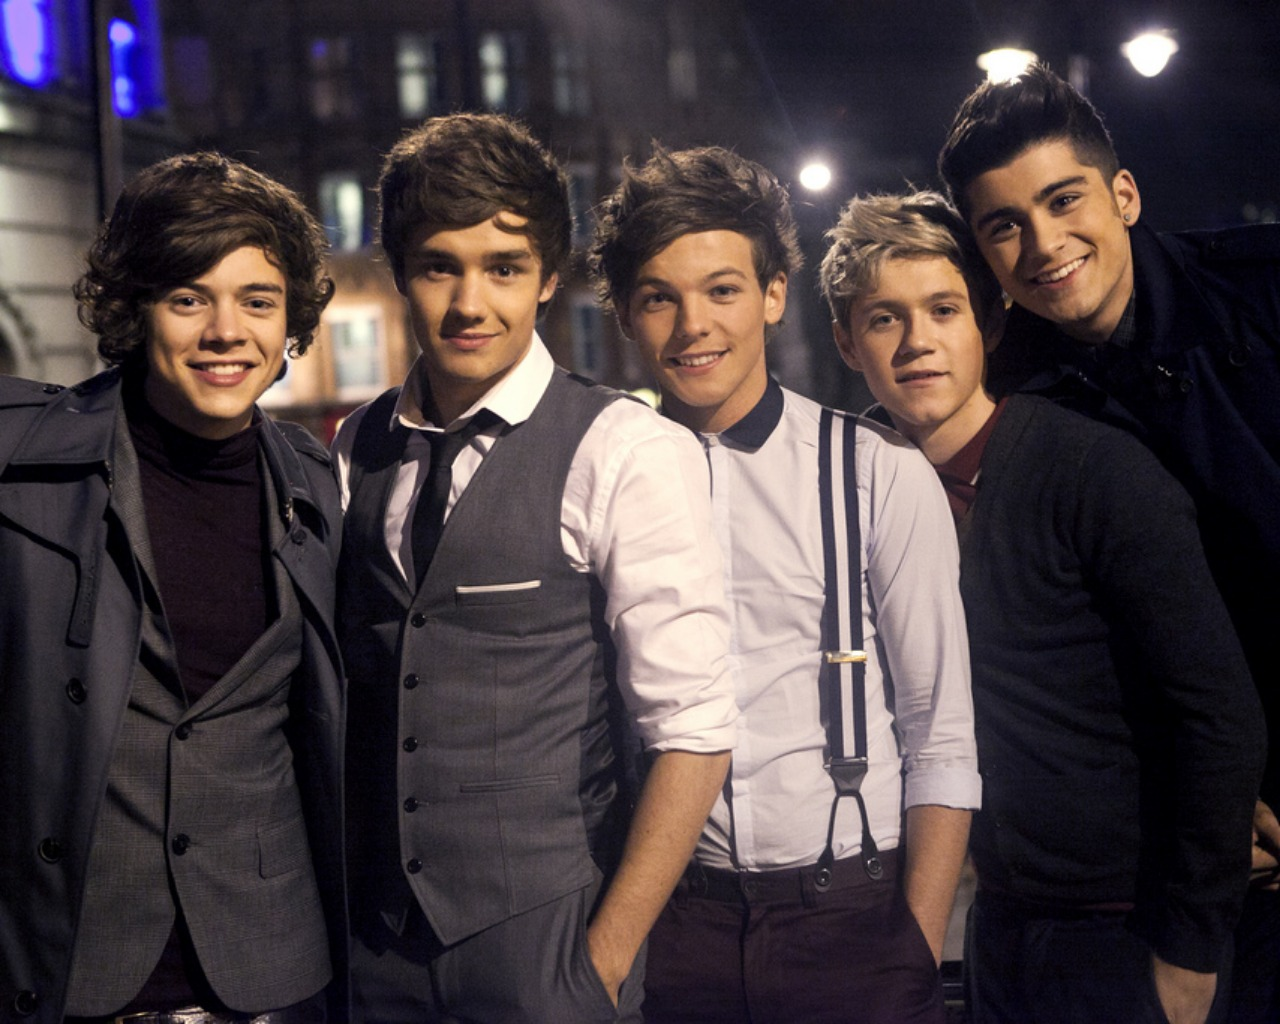 One Direction Pictures Wallpaper Desktop Background Gallery 1280x1024